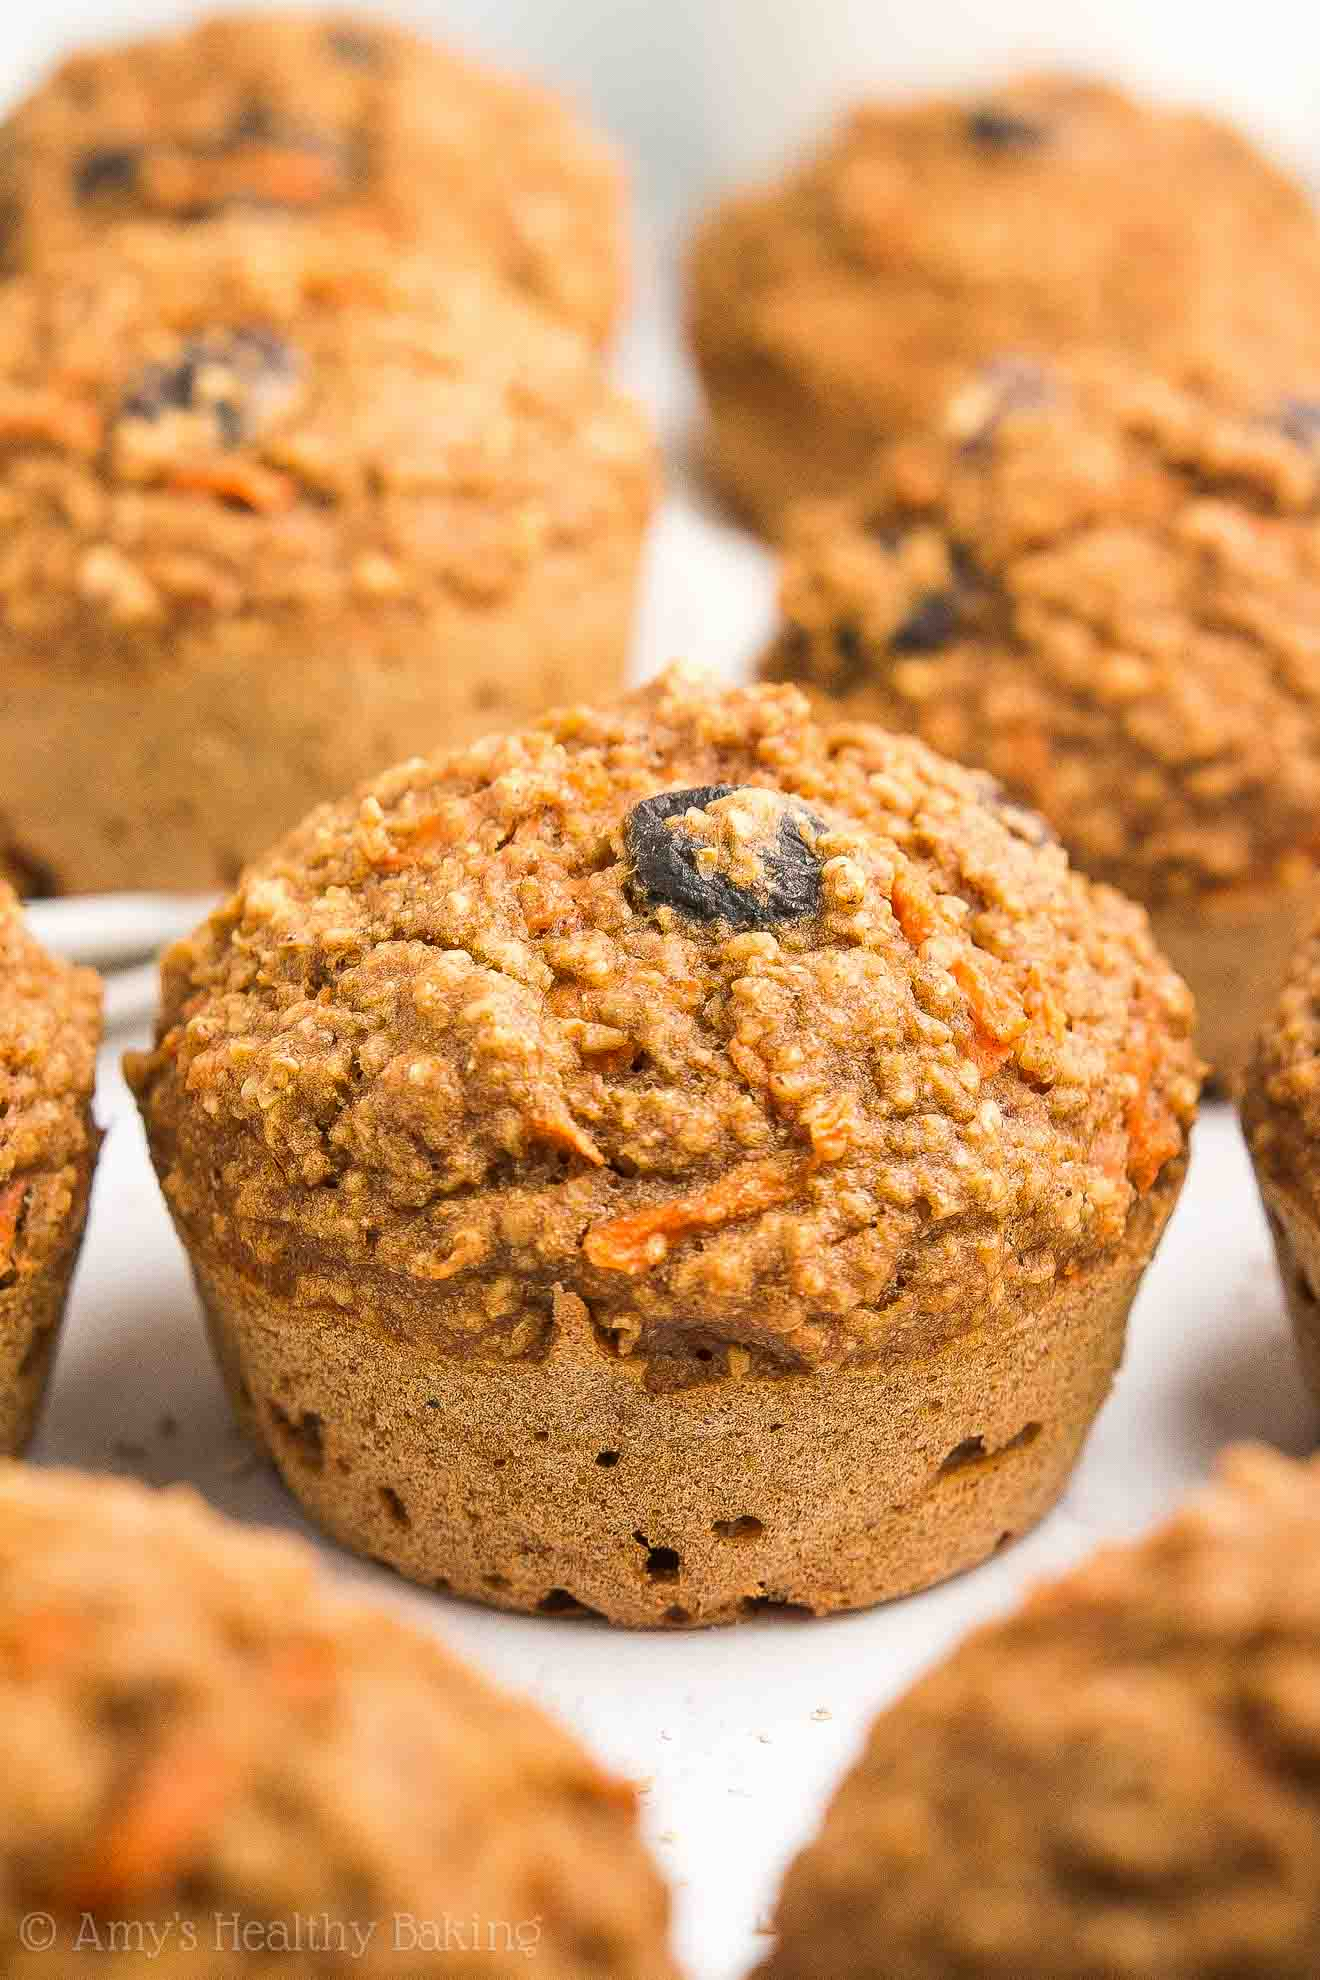 Freshly Baked Kid-Friendly Healthy Carrot Raisin Bran Muffins